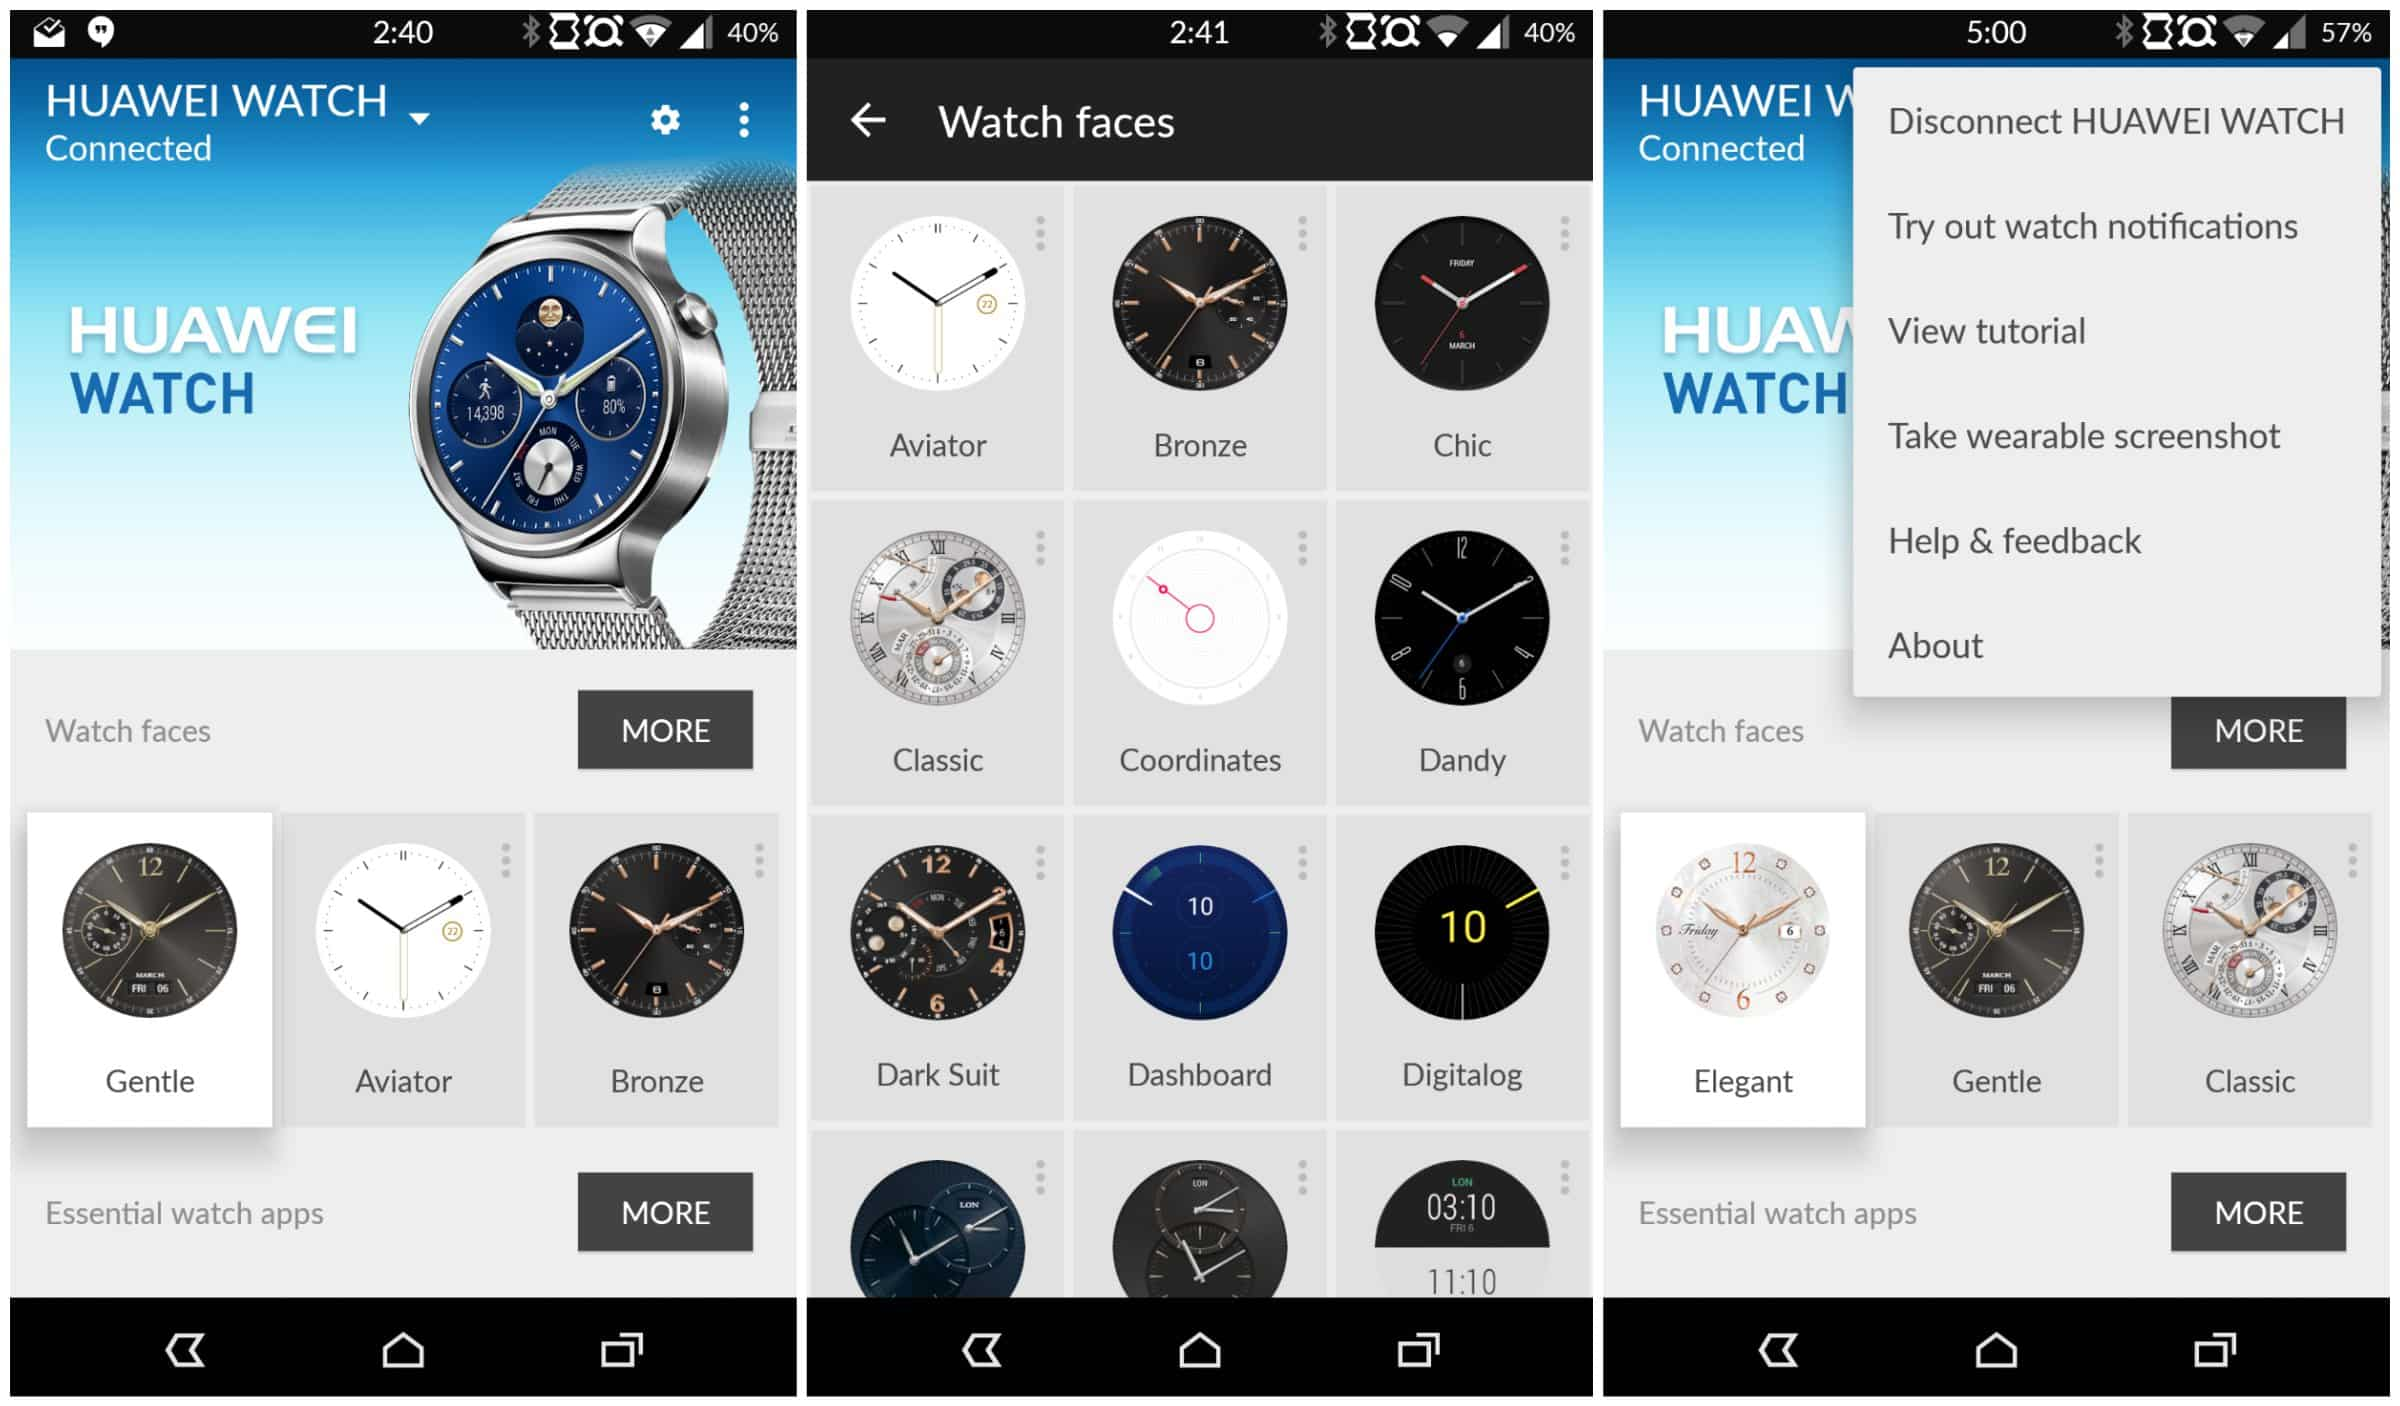 Huawei Watch App Screen